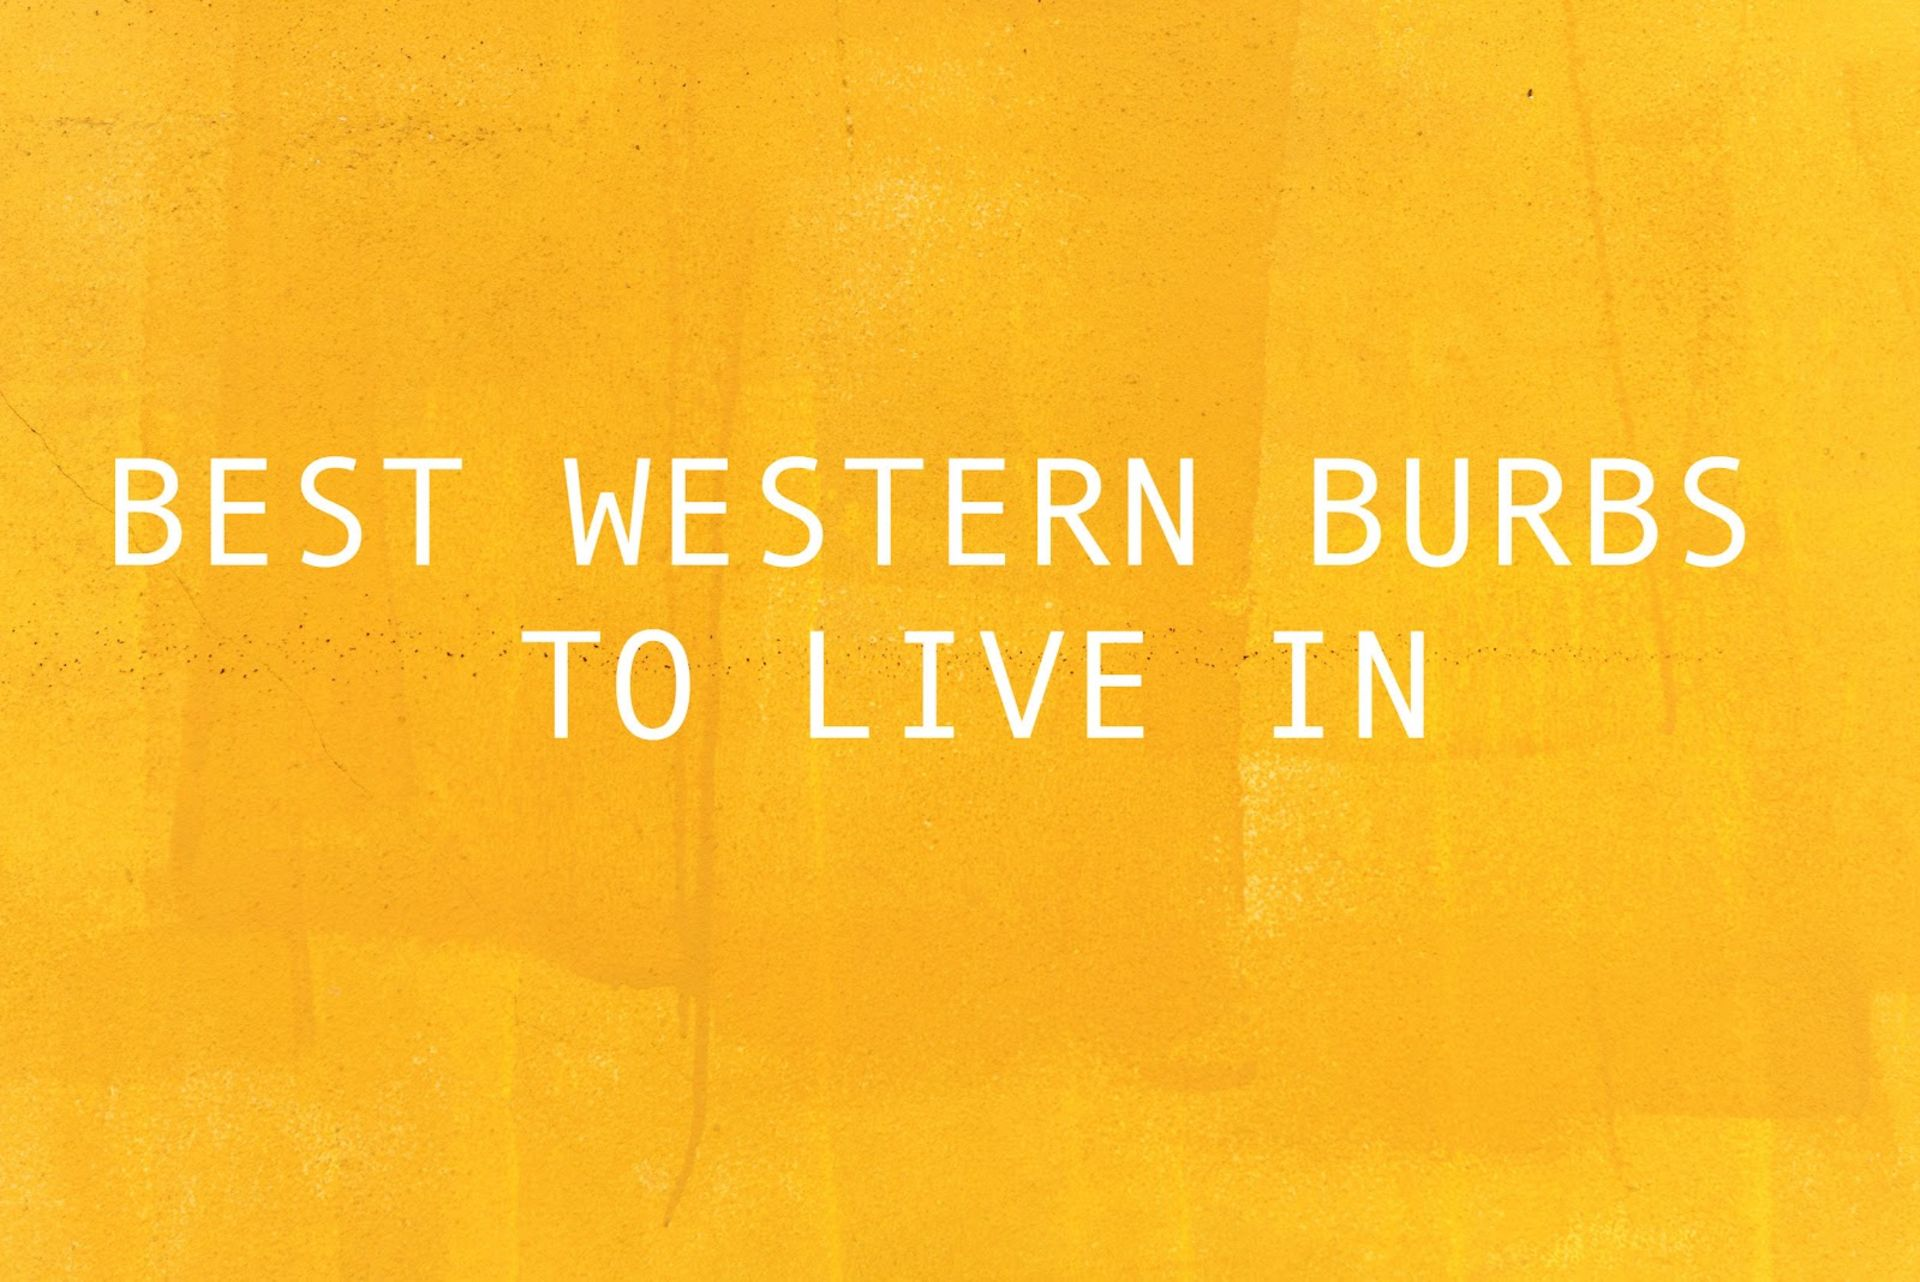 Best Western Burbs to Live In